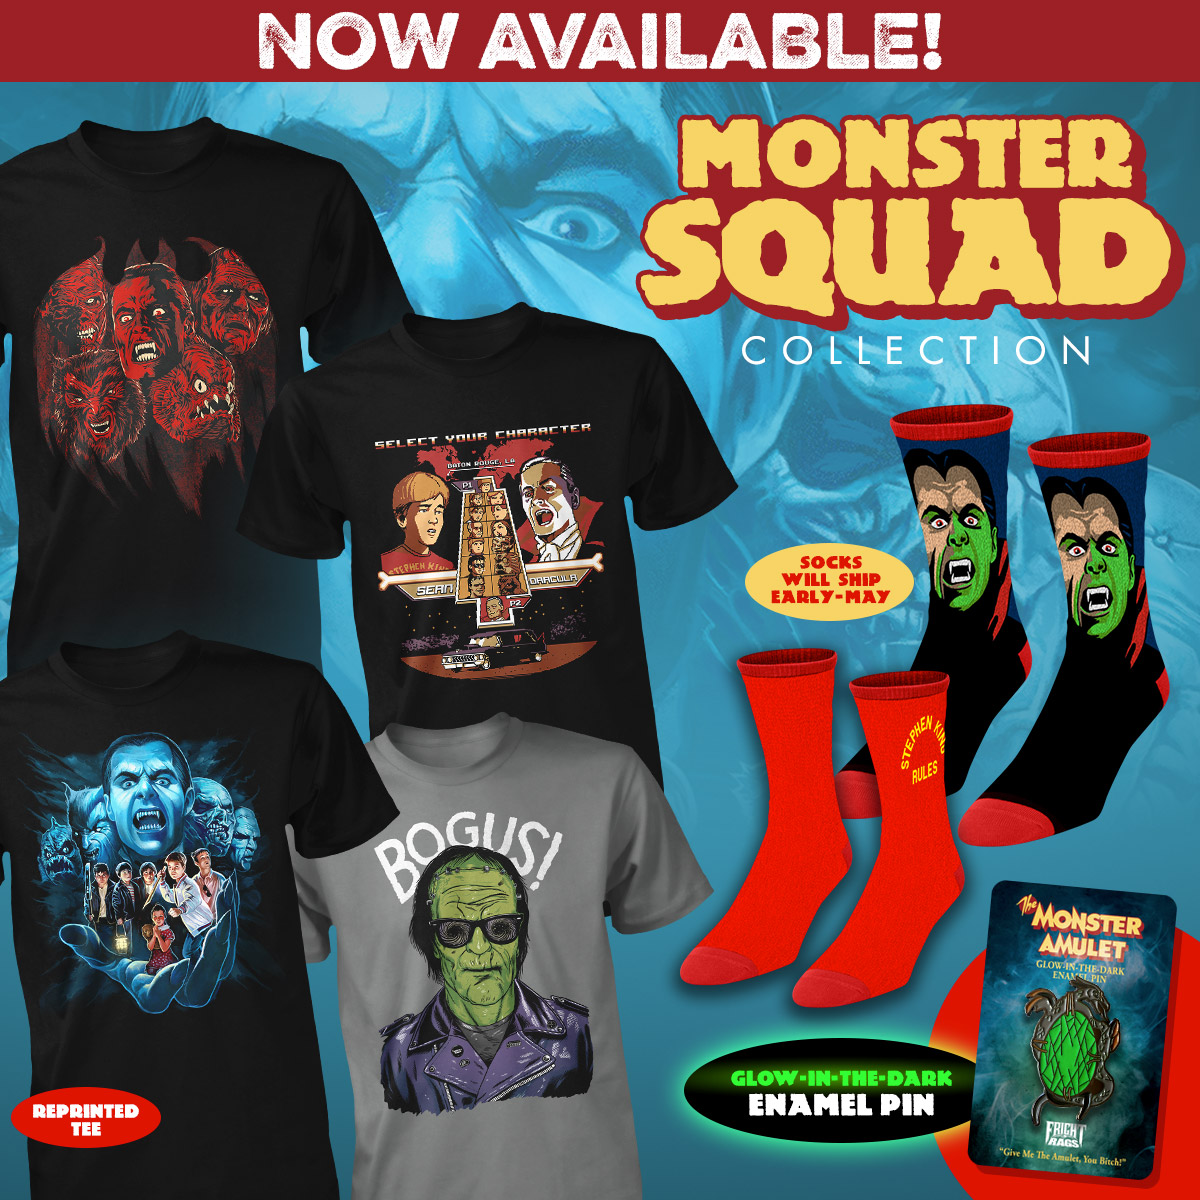 """Join The Monster Squad with Fright-Rags' latest apparel   Shirts, socks, & enamel pins on sale now: bit.ly/MonsterSquadFR     If you know that Wolfman's got nards, Creature likes Twinkies, and Stephen King rules, you're the perfect candidate for The Monster Squad. Join the club with  Fright-Rags ' collection of merchandise dedicated to Fred Dekker's 1987 cult classic.  The Monster Squad Collection features four shirts: a monster mash by Justin Erickson, a """"bogus"""" rendering of Frankenstein's monster by Jimmy Breen, a video-game inspired piece by Timothy Lim, and a reprint of Abrar Ajmal's popular Monster Squad design (also available on hoodies).  The collection includes two pairs of custom-knit socks as well: one featuring Count Dracula and another stating """"Stephen King Rules,"""" as depicted on a shirt in the film. Finally, you can own the film's all-powerful amulet, recreated as a glow-in-the-dark enamel pin.  The Monster Squad Collection is on sale now at  Fright-Rags.com . Shirts and enamel pins are in stock, while socks will ship in early-May.  Be sure to check out back with Fright-Rags this Saturday, April 15, for a groovy Midnight Madness Tee available exclusively for 24 hours."""